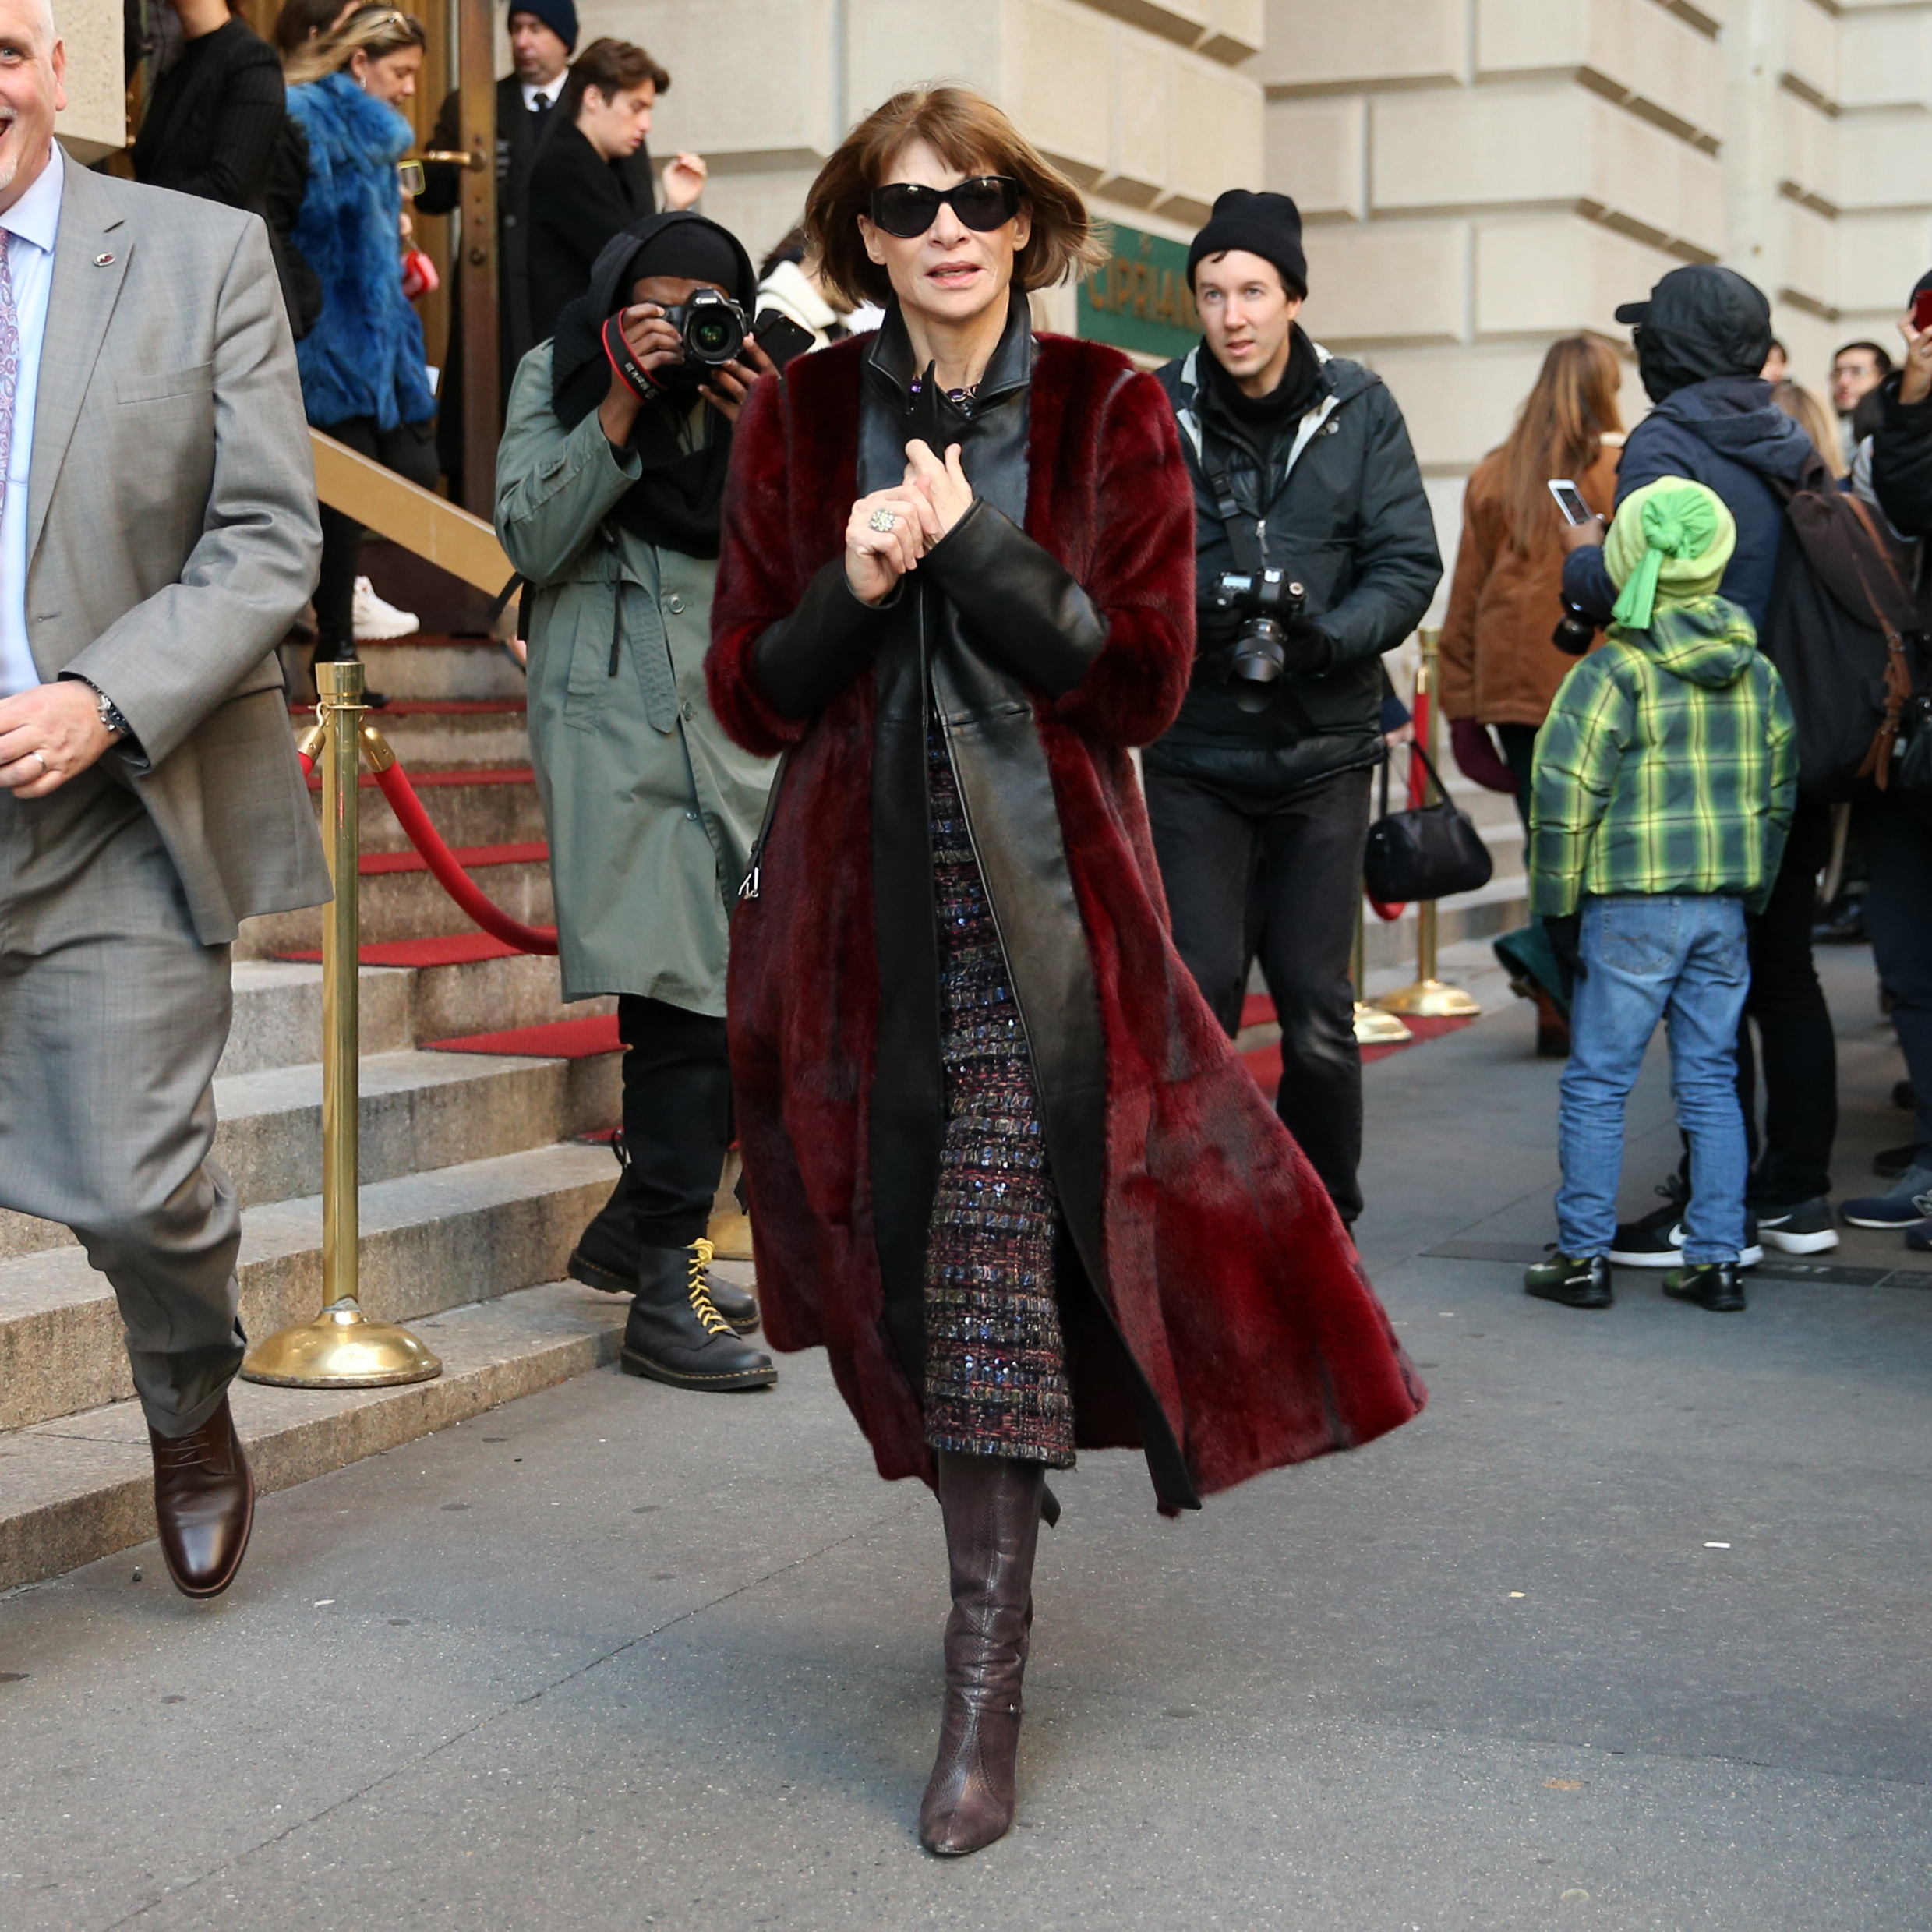 Vogue editor Anna Wintour attends Oscar de la Renta AW18 at Cunard Building during New York Fashion Week in New York City, New York on February 12, 2018. <P> Pictured: Anna Wintour <B>Ref: SPL1658630  120218  </B><BR/> Picture by: Christopher Peterson/Splash News<BR/> </P><P> <B>Splash News and Pictures</B><BR/> Los Angeles:310-821-2666<BR/> New York:212-619-2666<BR/> London:870-934-2666<BR/> <span id=